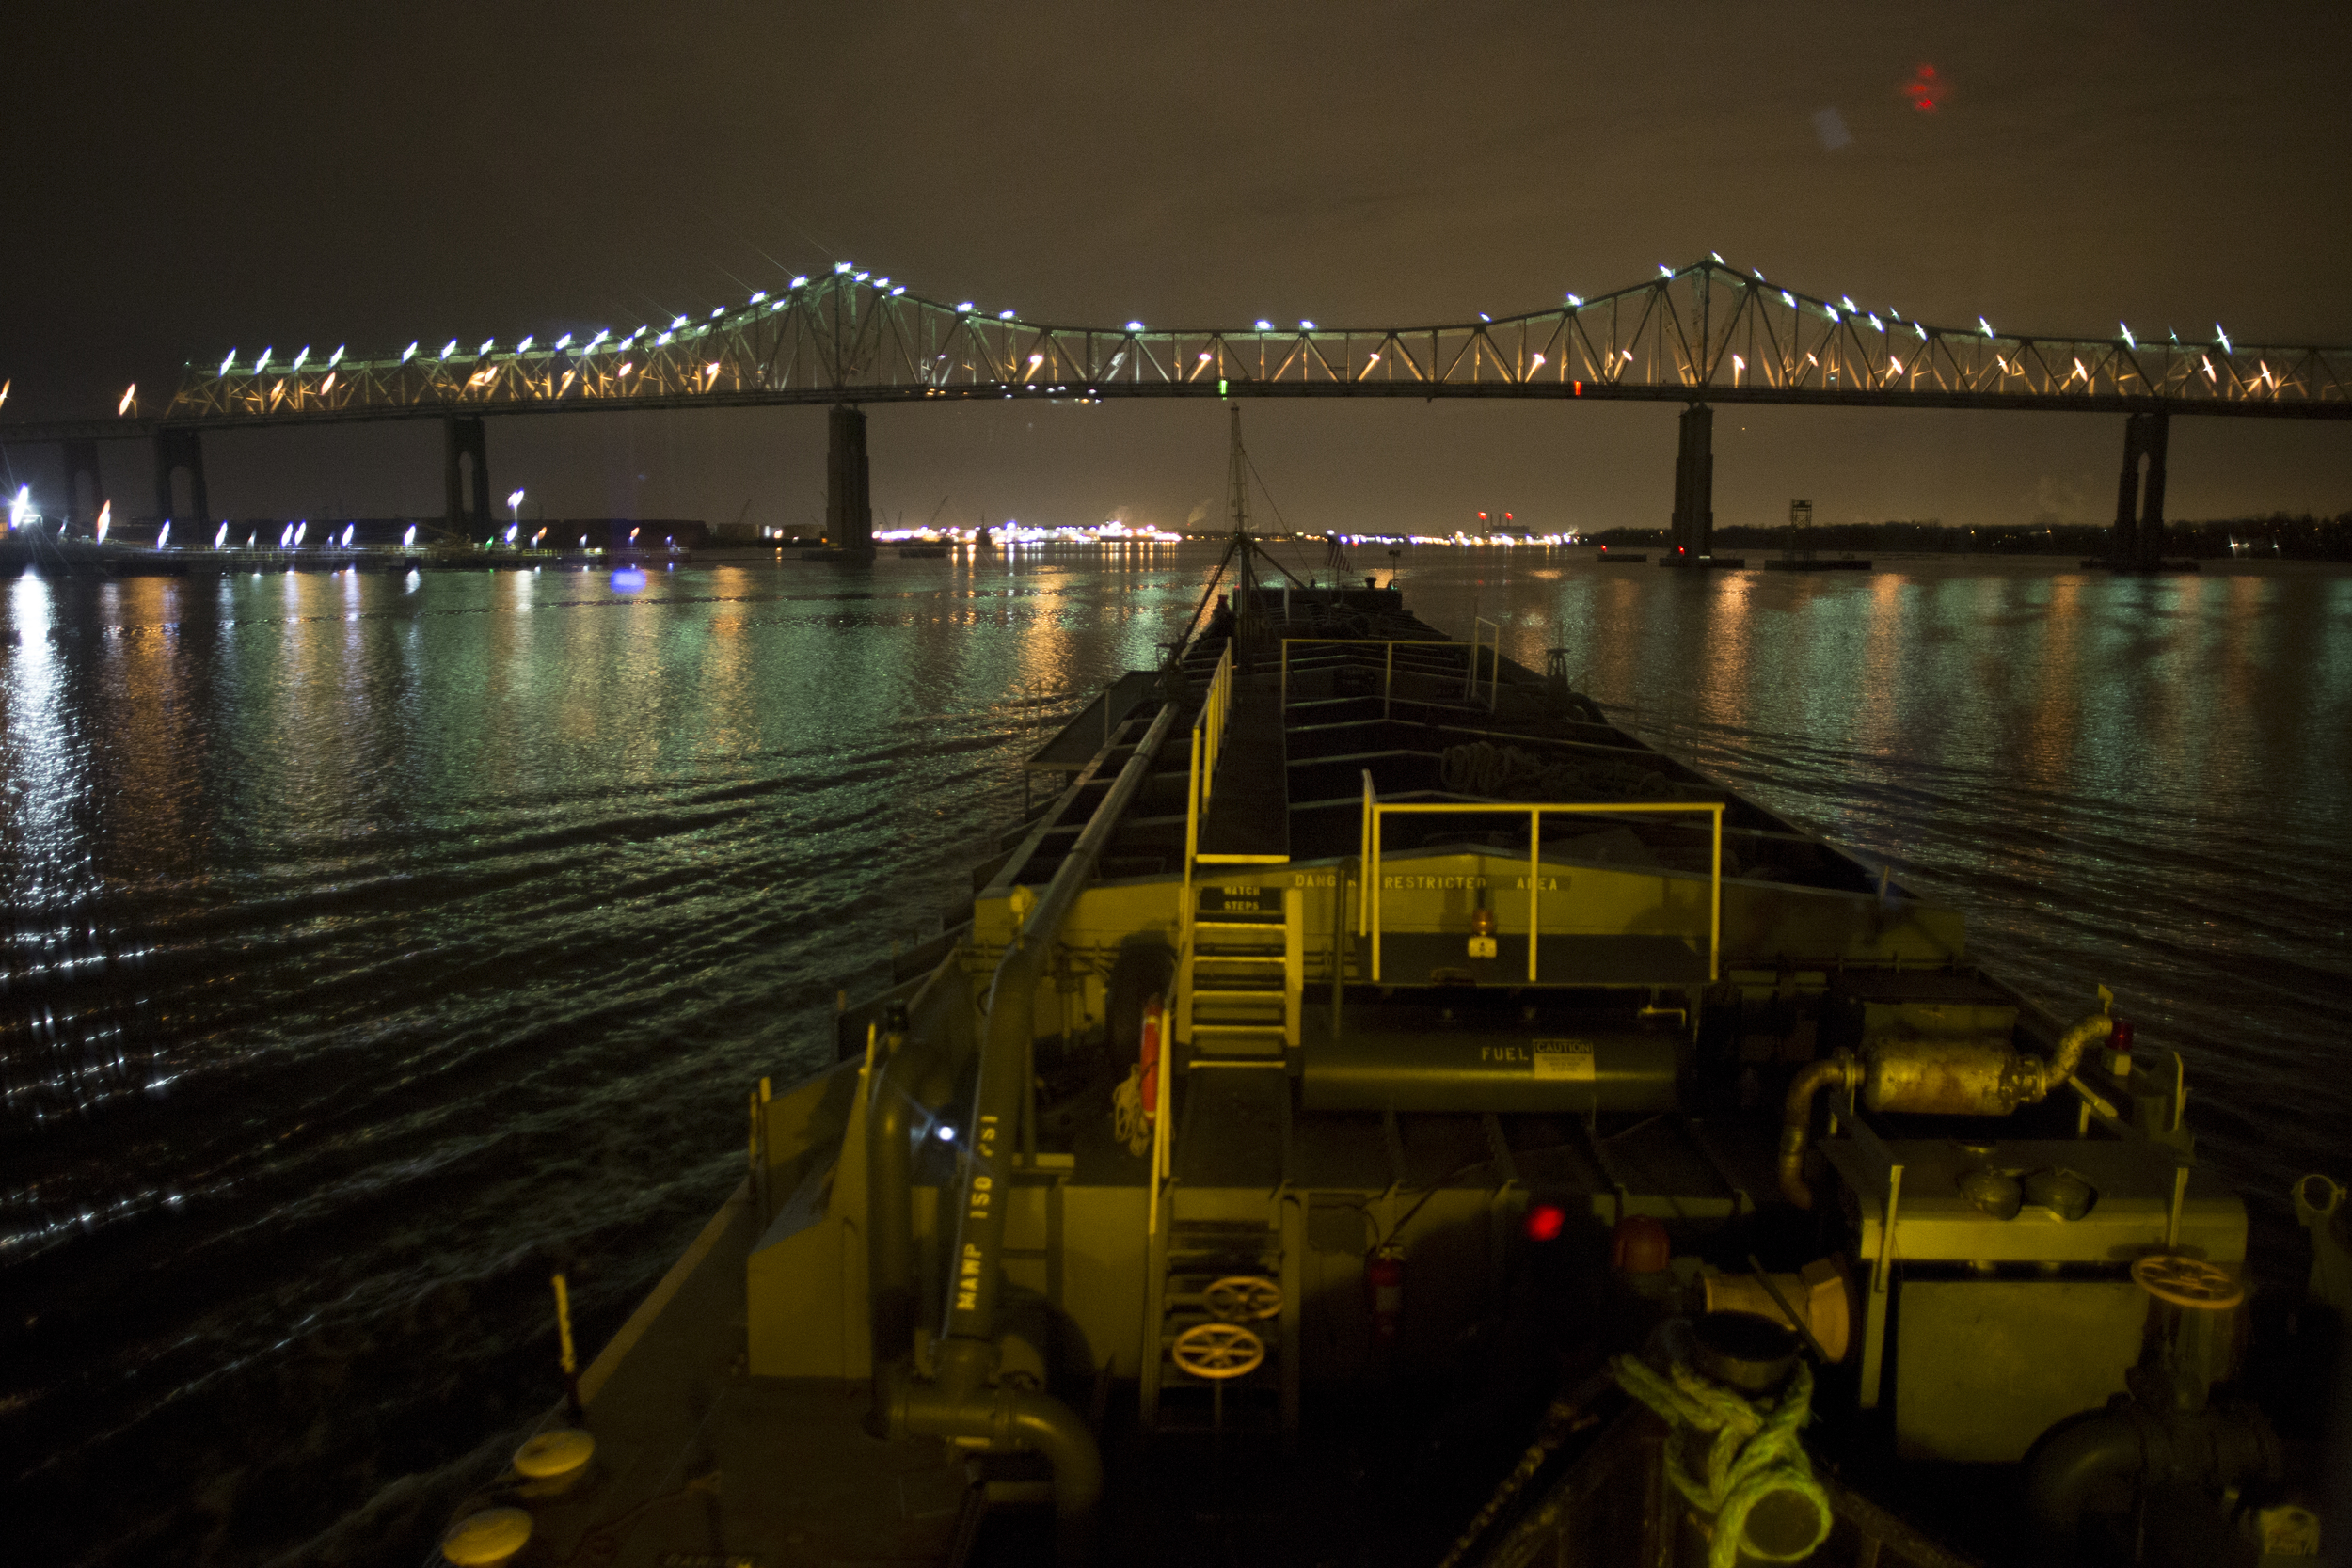 The view from the bridge of a tug pushing a fully-loaded oil barge up the East River on a nighttime run to deliver heating oil to the Bronx.